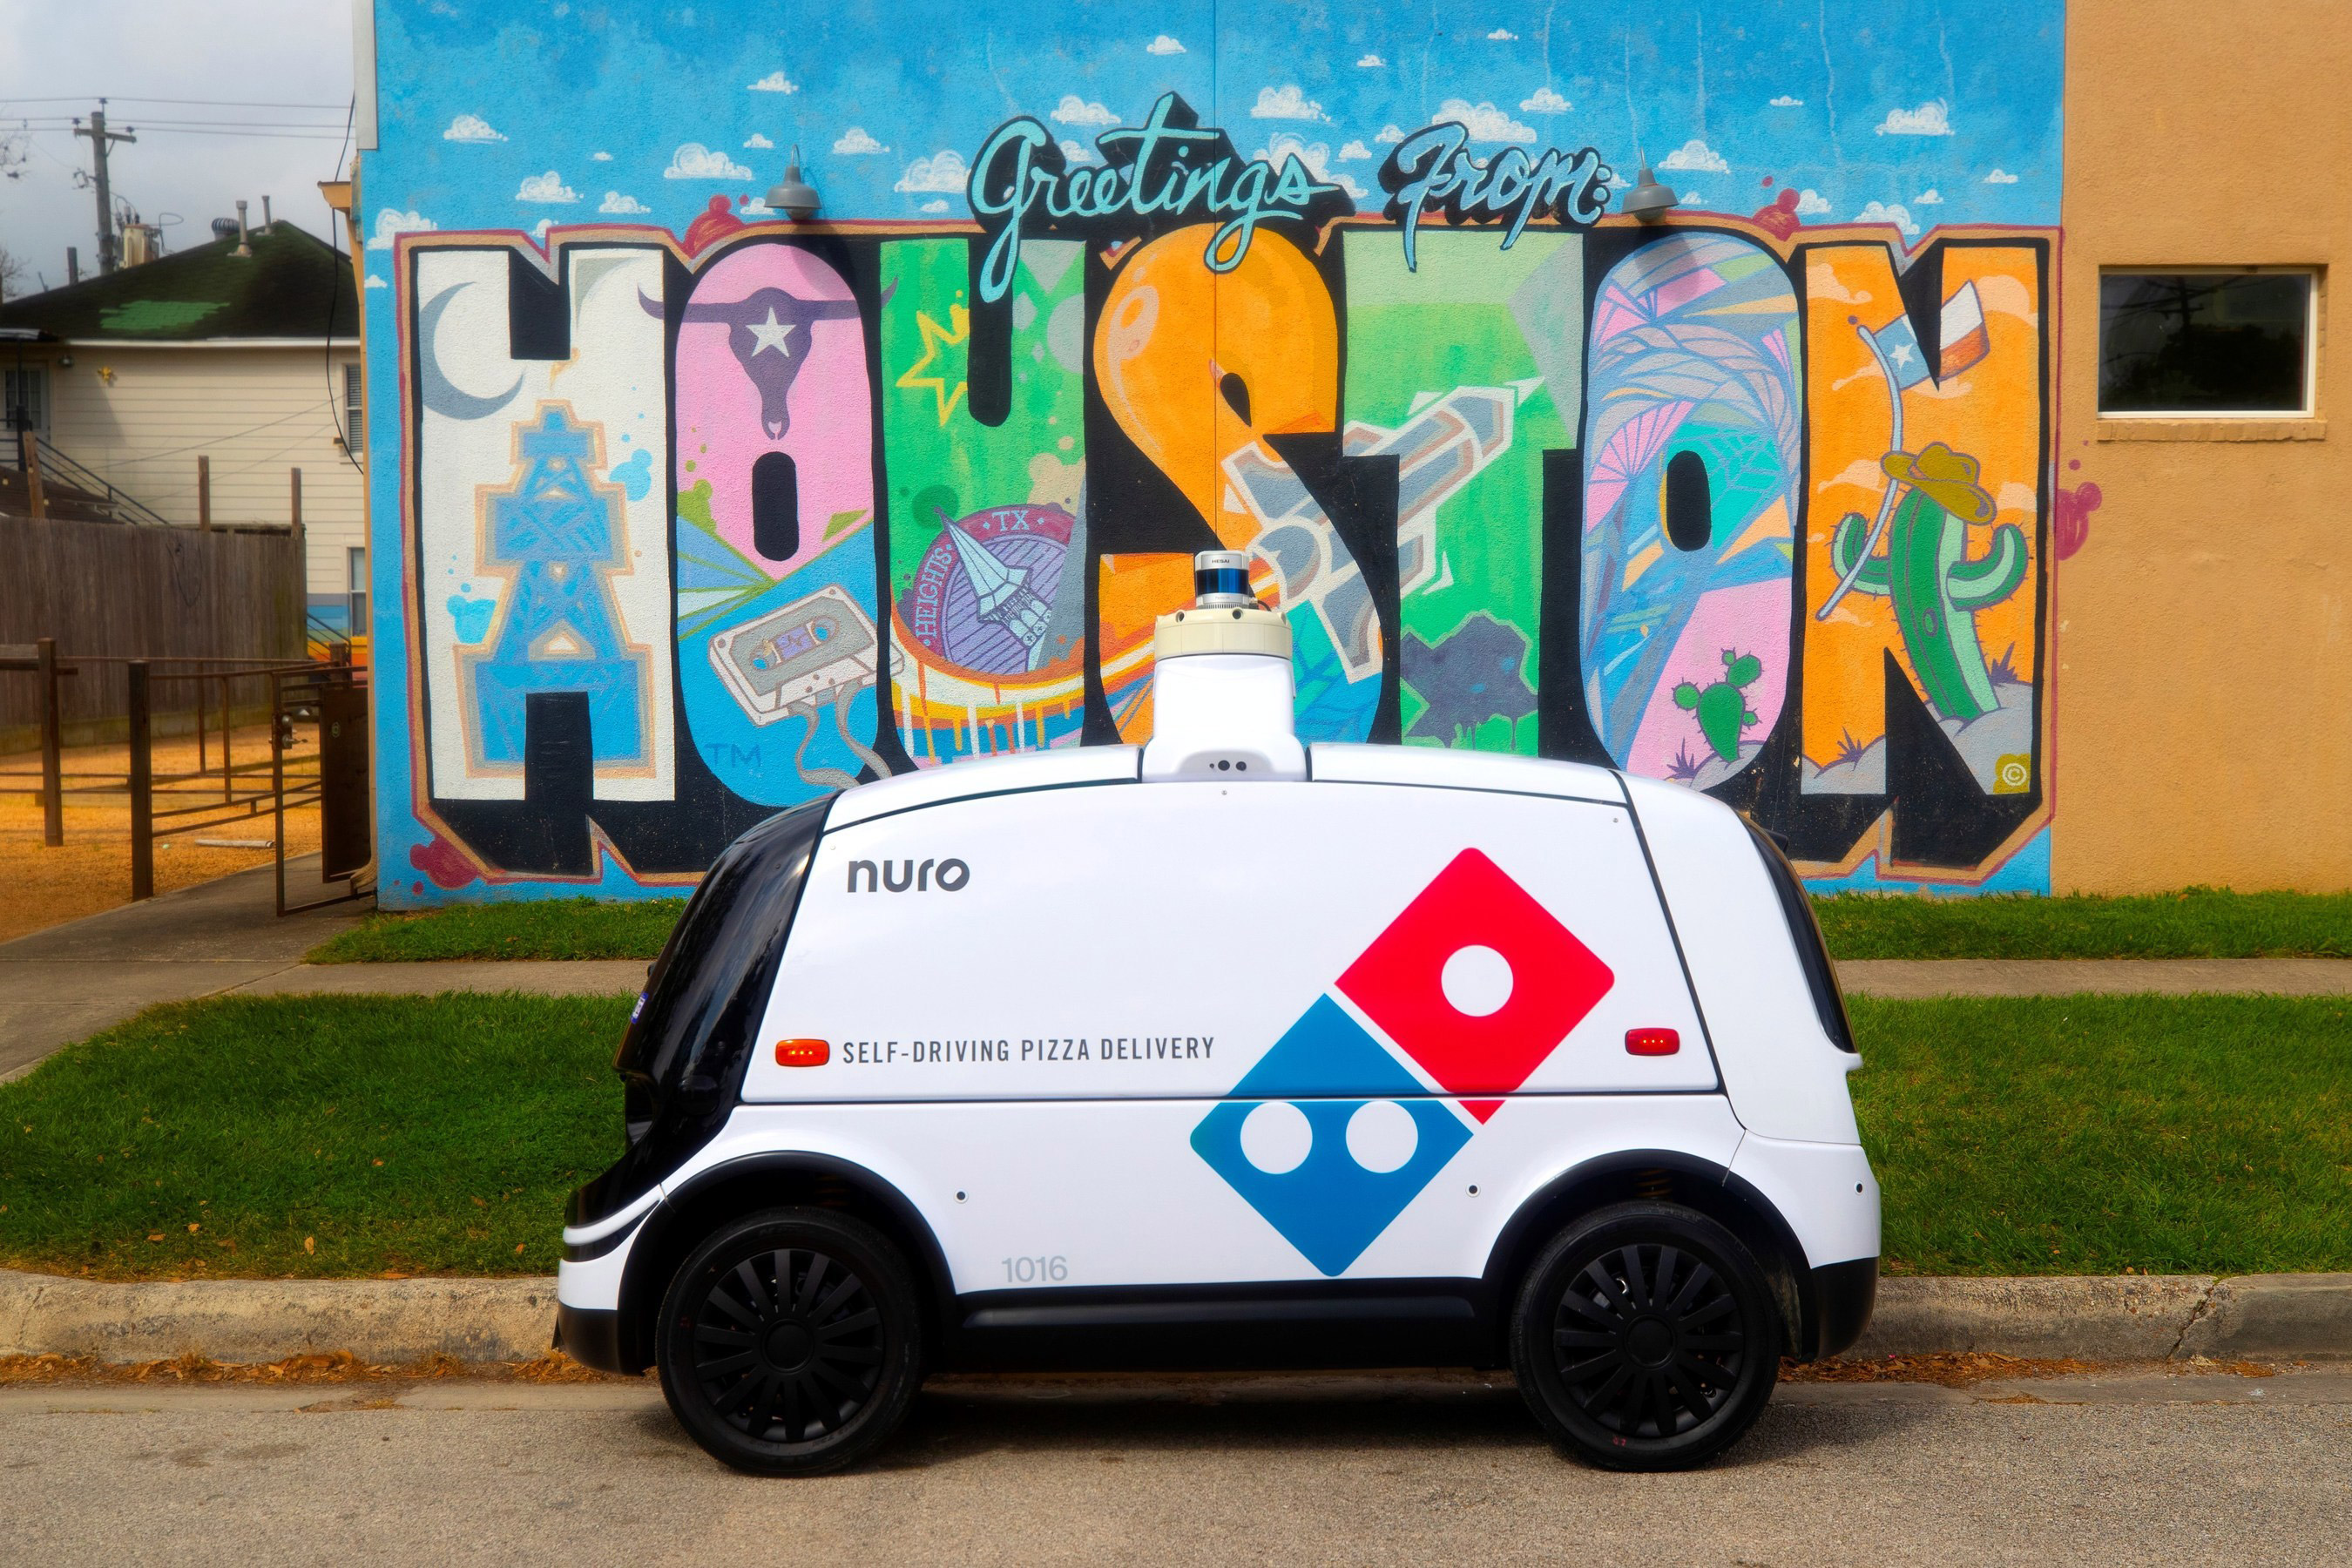 Beginning this week, Domino's and Nuro are launching autonomous pizza delivery in Houston.